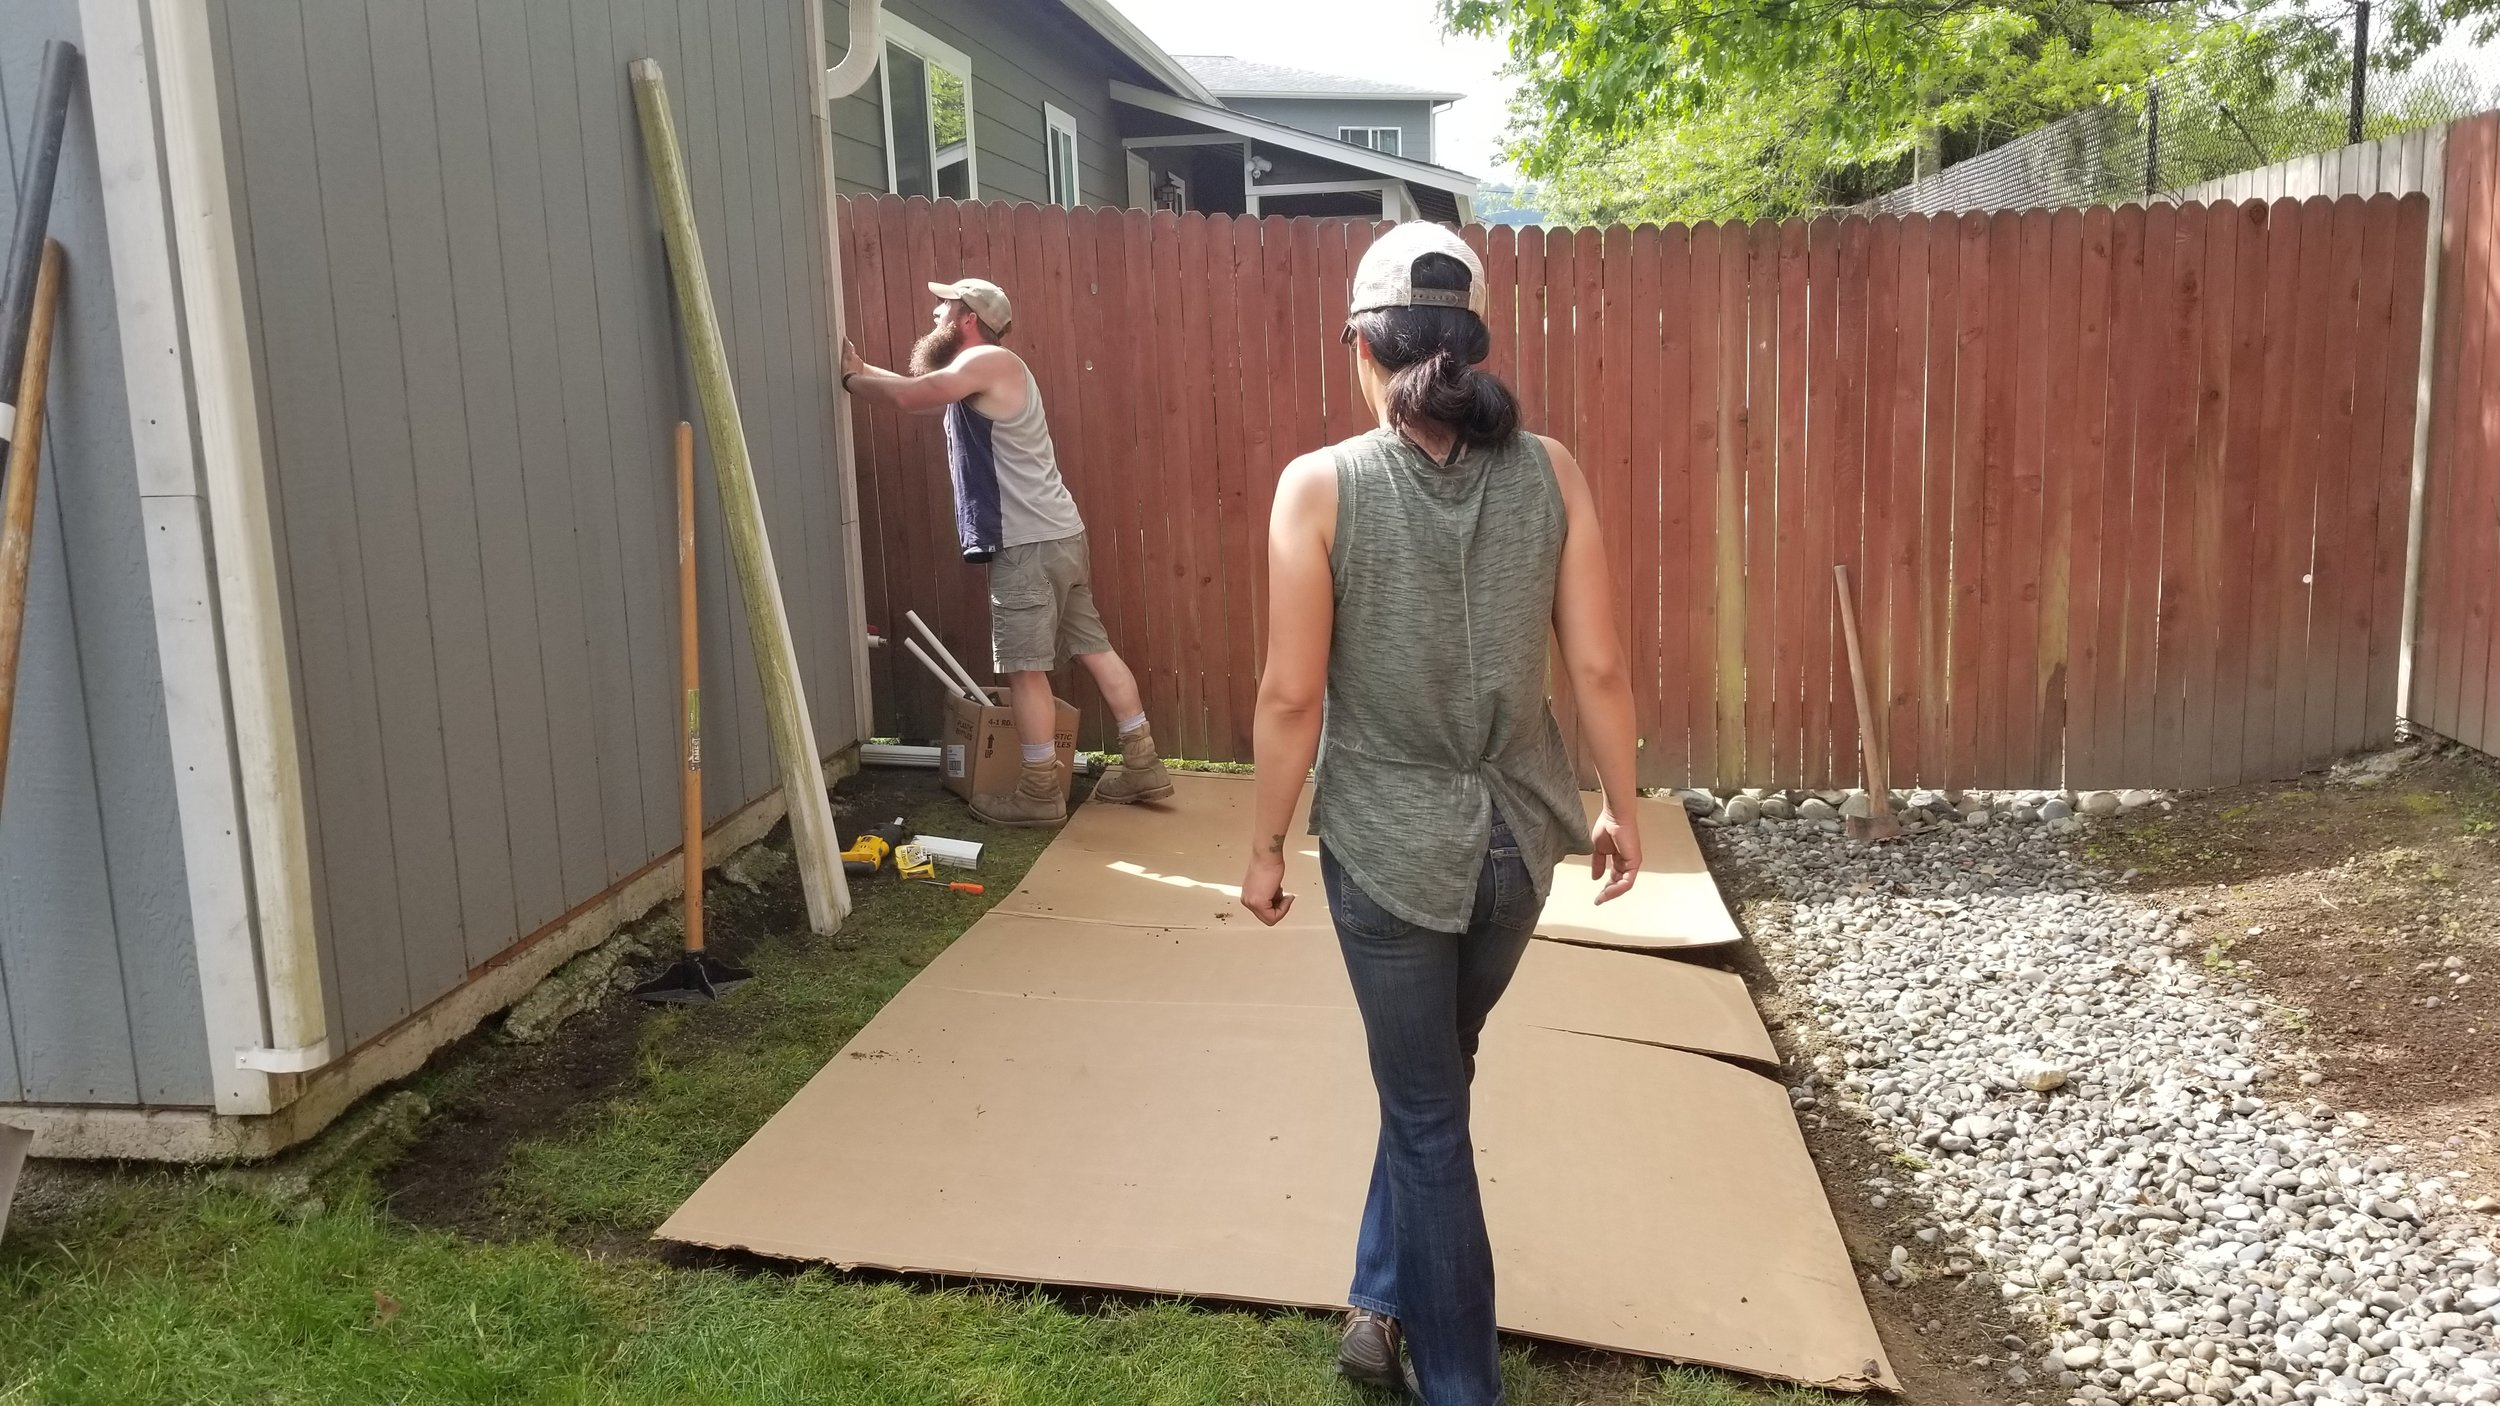 MID-WAY: The Vet Crew places large strips of cardboard across the section to keep the weeds down naturally.